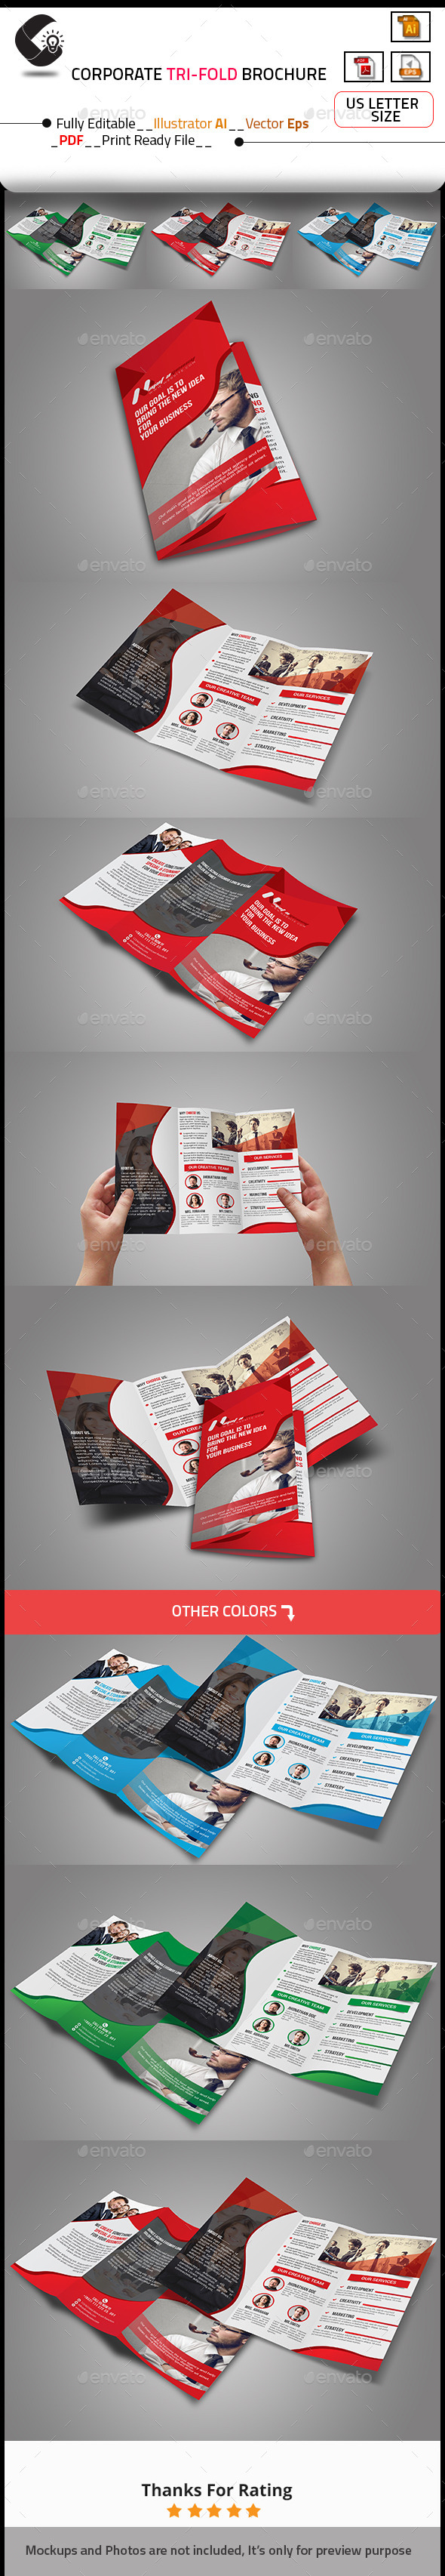 GraphicRiver Tri-Fold Creative Agency Brochure 10663900